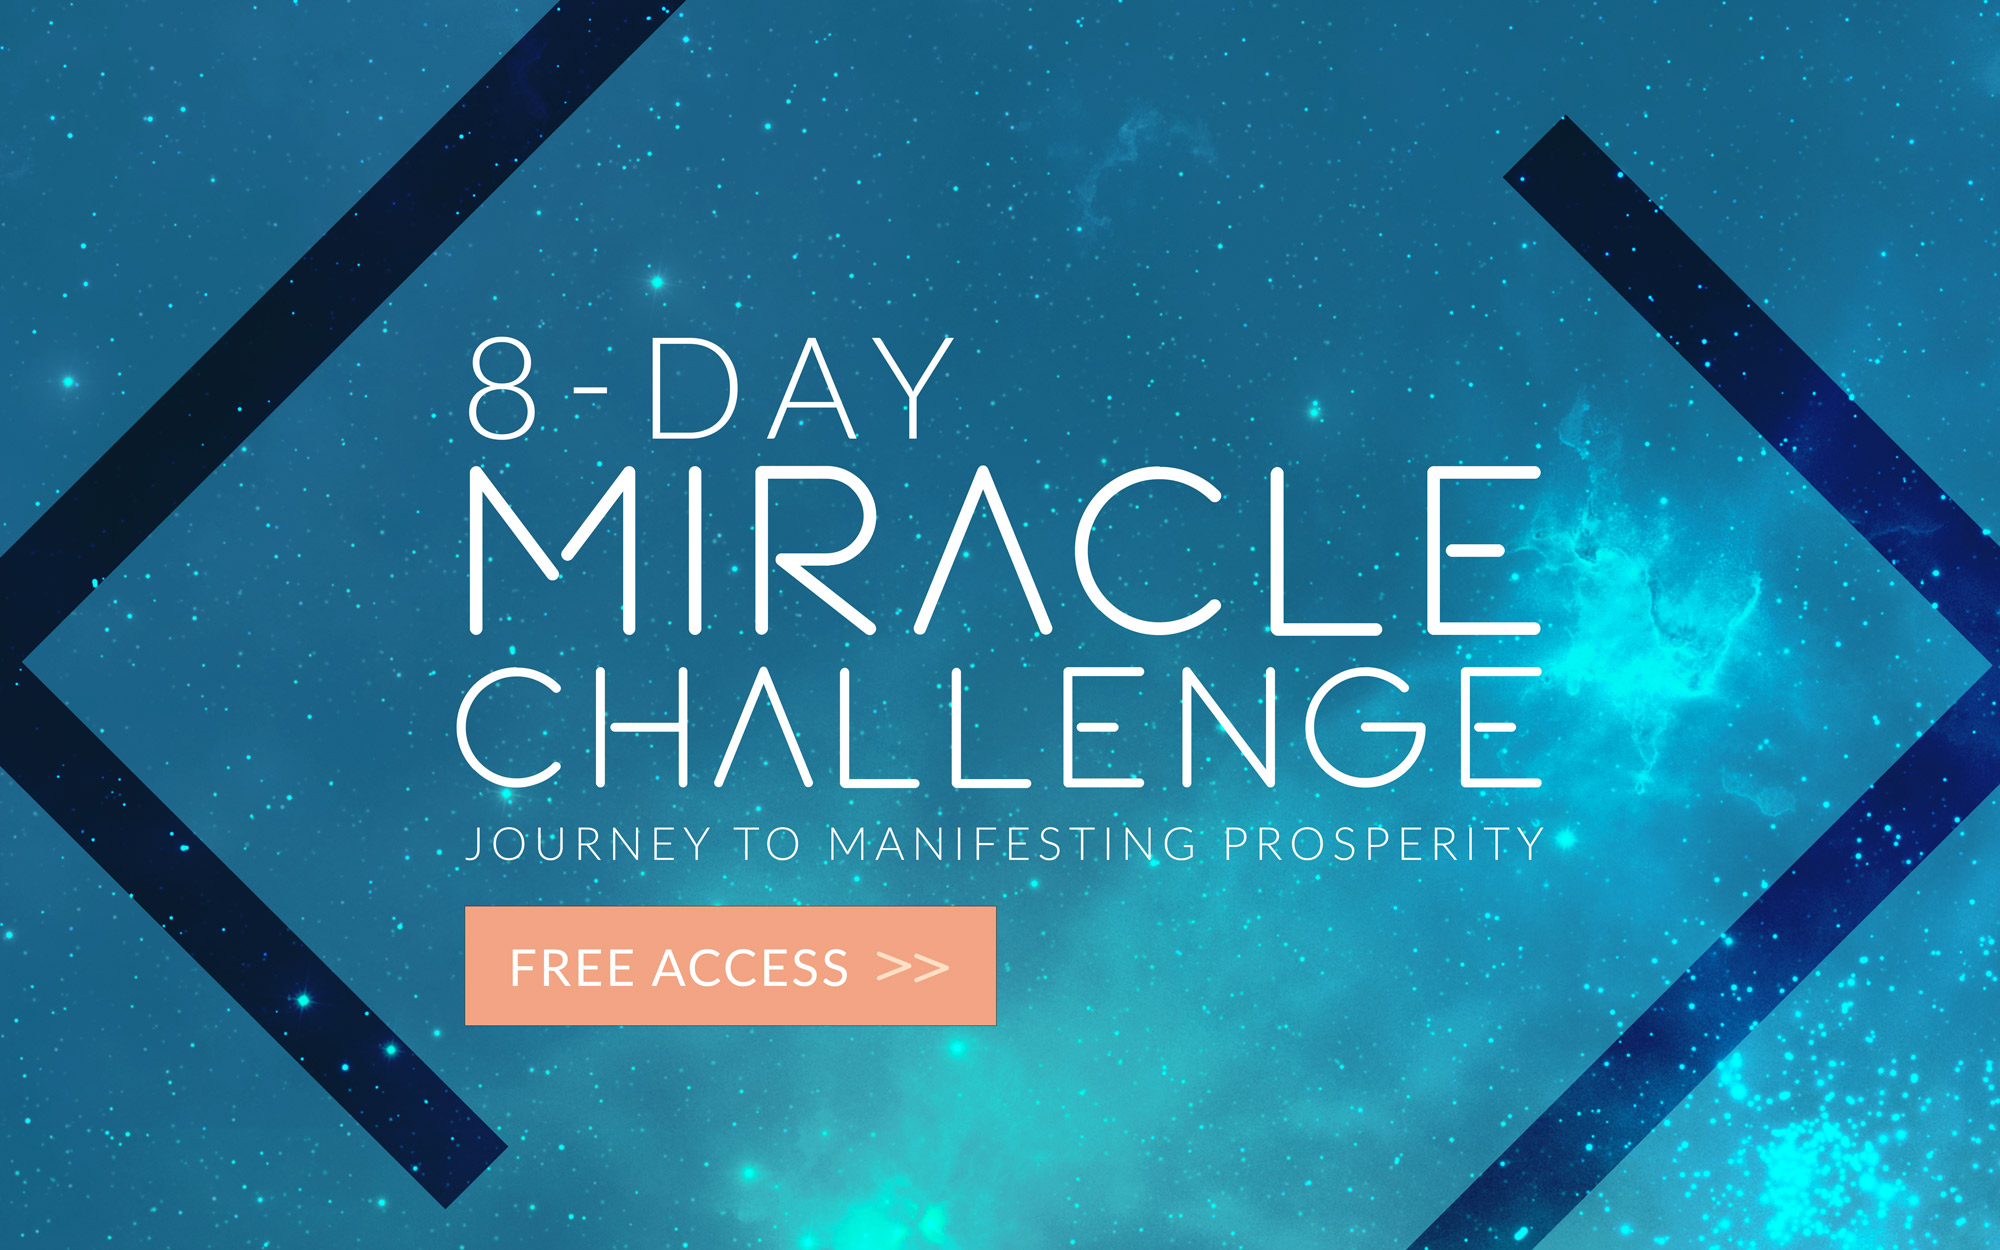 8-Day Miracle Challenge